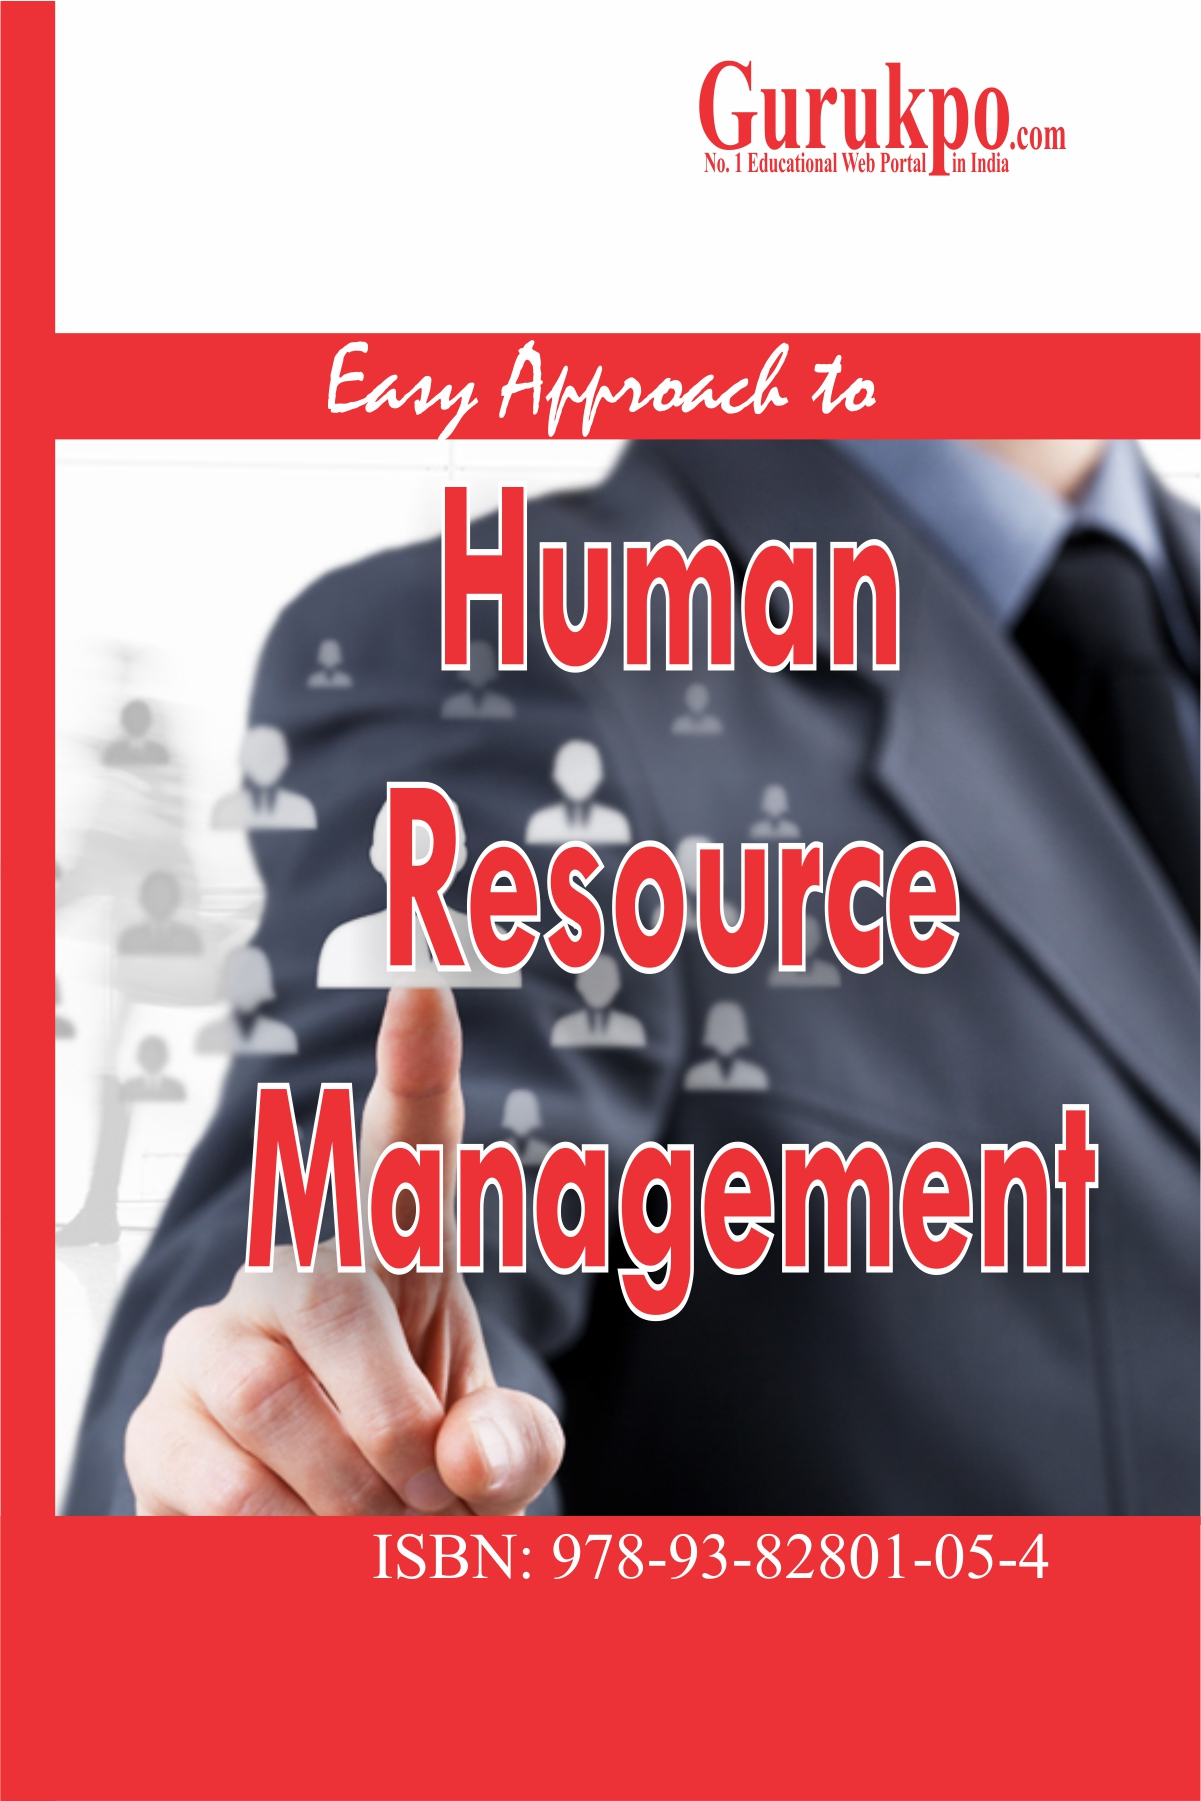 Human Resource Management | Free Study Notes for MBA MCA BBA BCA BA